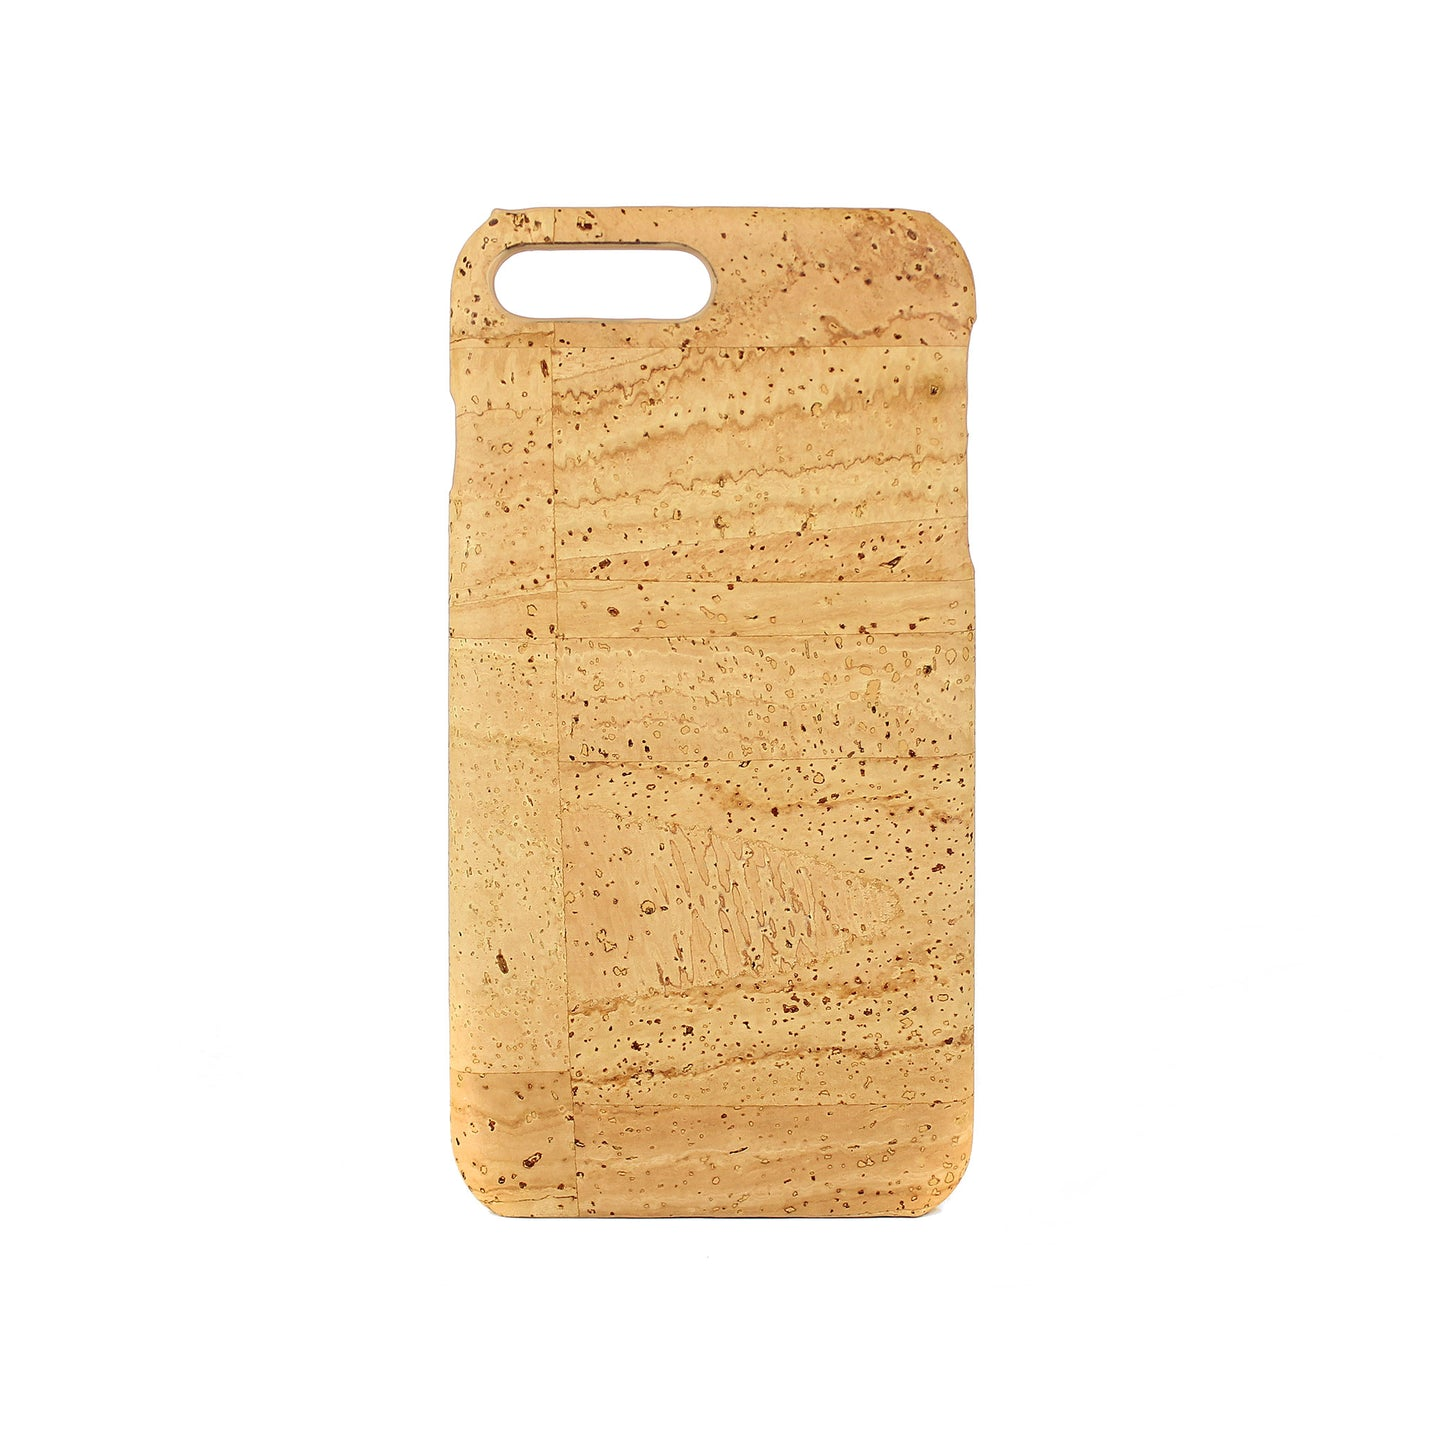 iPhone 7 Plus Mobile Phone Cover